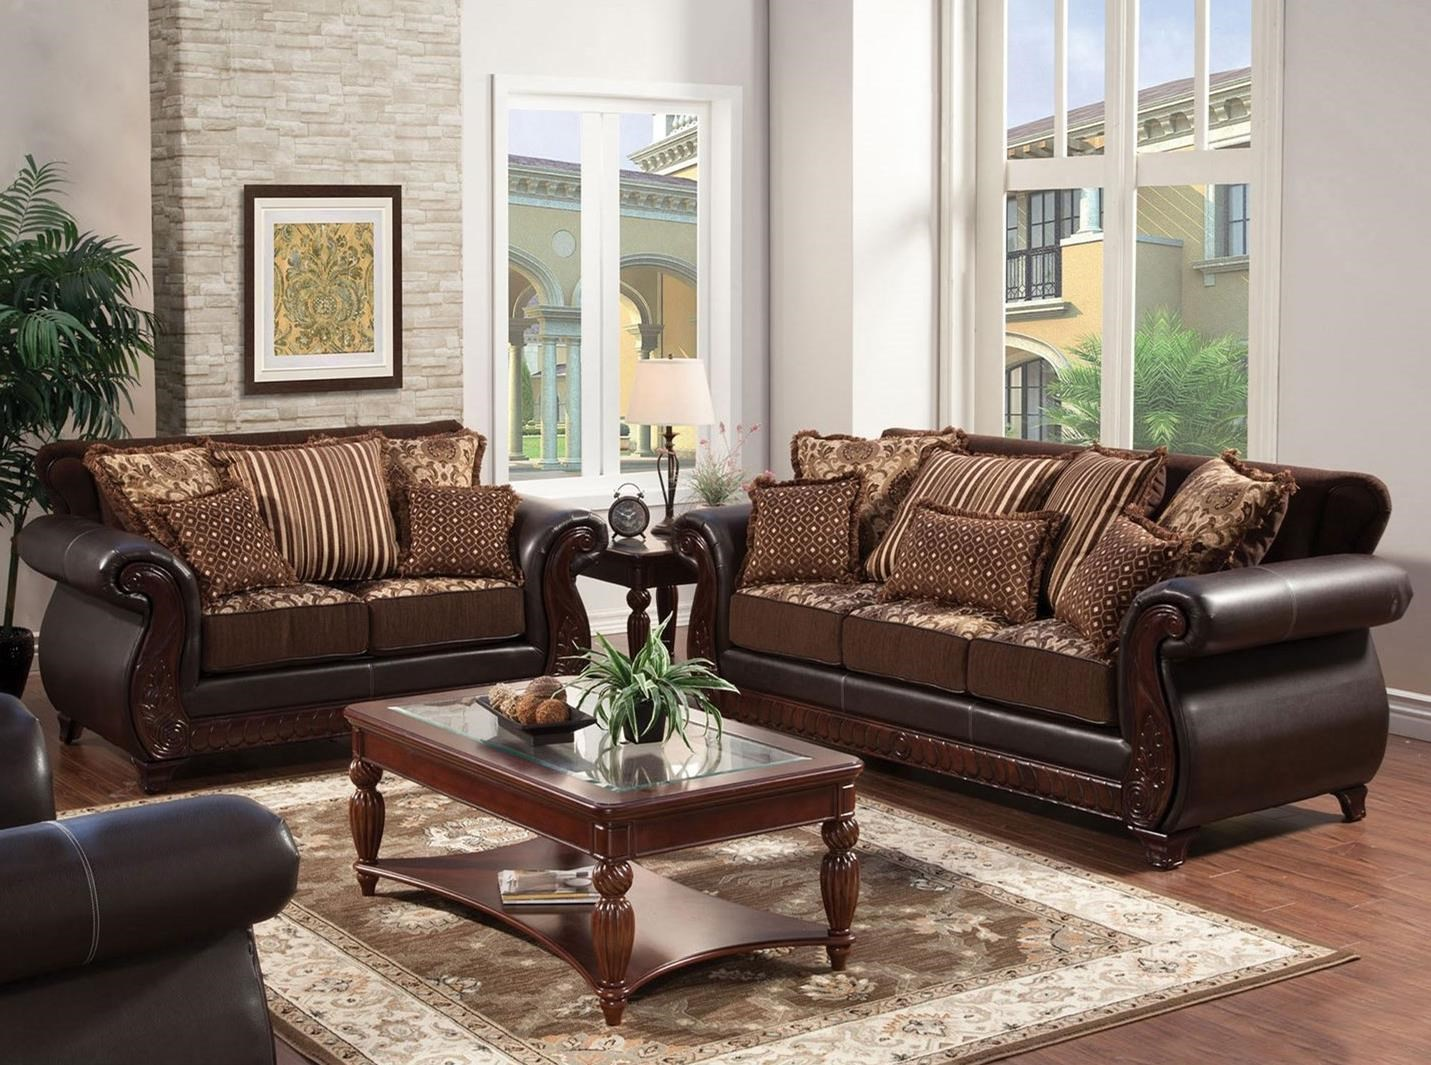 Franklin Sofa and Love Seat by Furniture of America - FOA at Del Sol Furniture